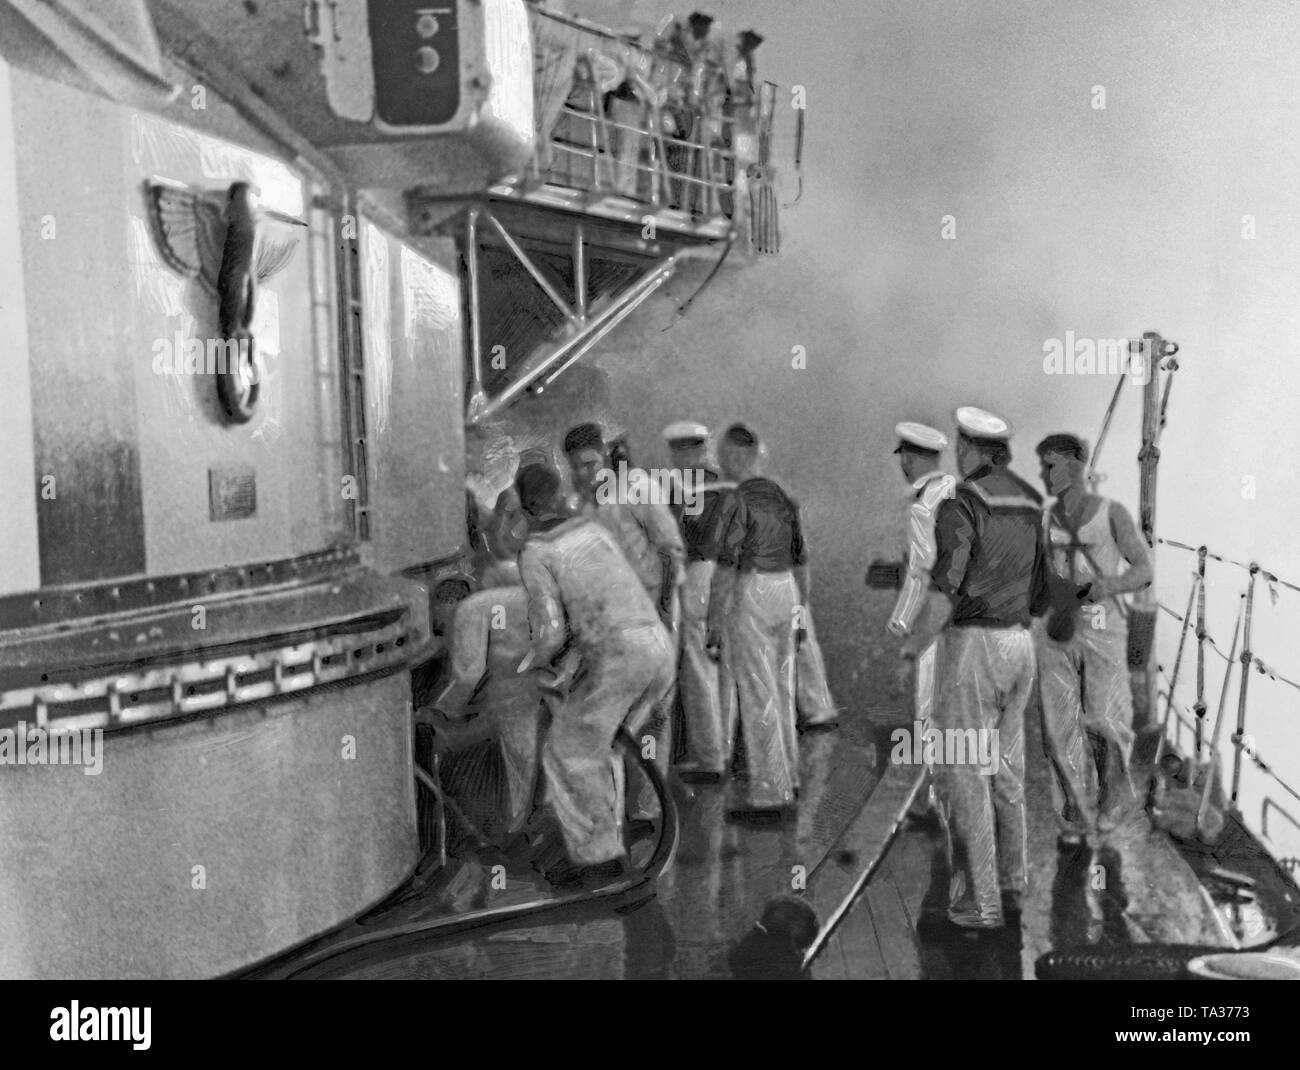 Photoof a group of sailors during cleaning-up and fire-fighting operations on the deck of'Deutschland' after the bomb attack in the port of the Balearic Island of Ibiza on the 29th of May, 1937. To the left, the side of thefront turret (decorated with the imperialeagle and a swastika). In the background, billowing smoke. - Stock Image